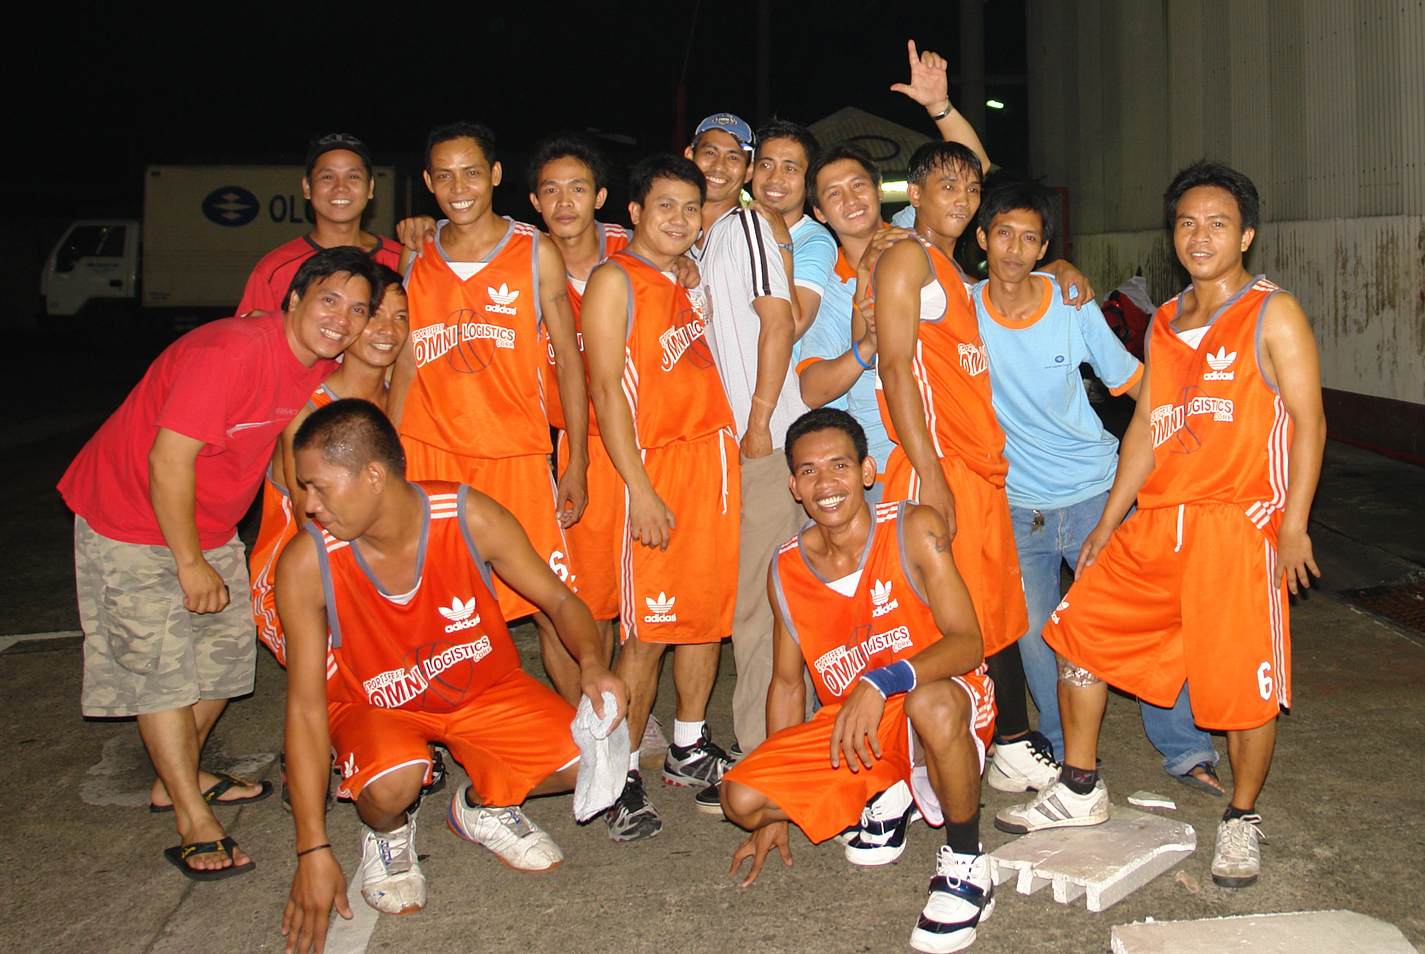 OMNI BASKETBALL TEAM